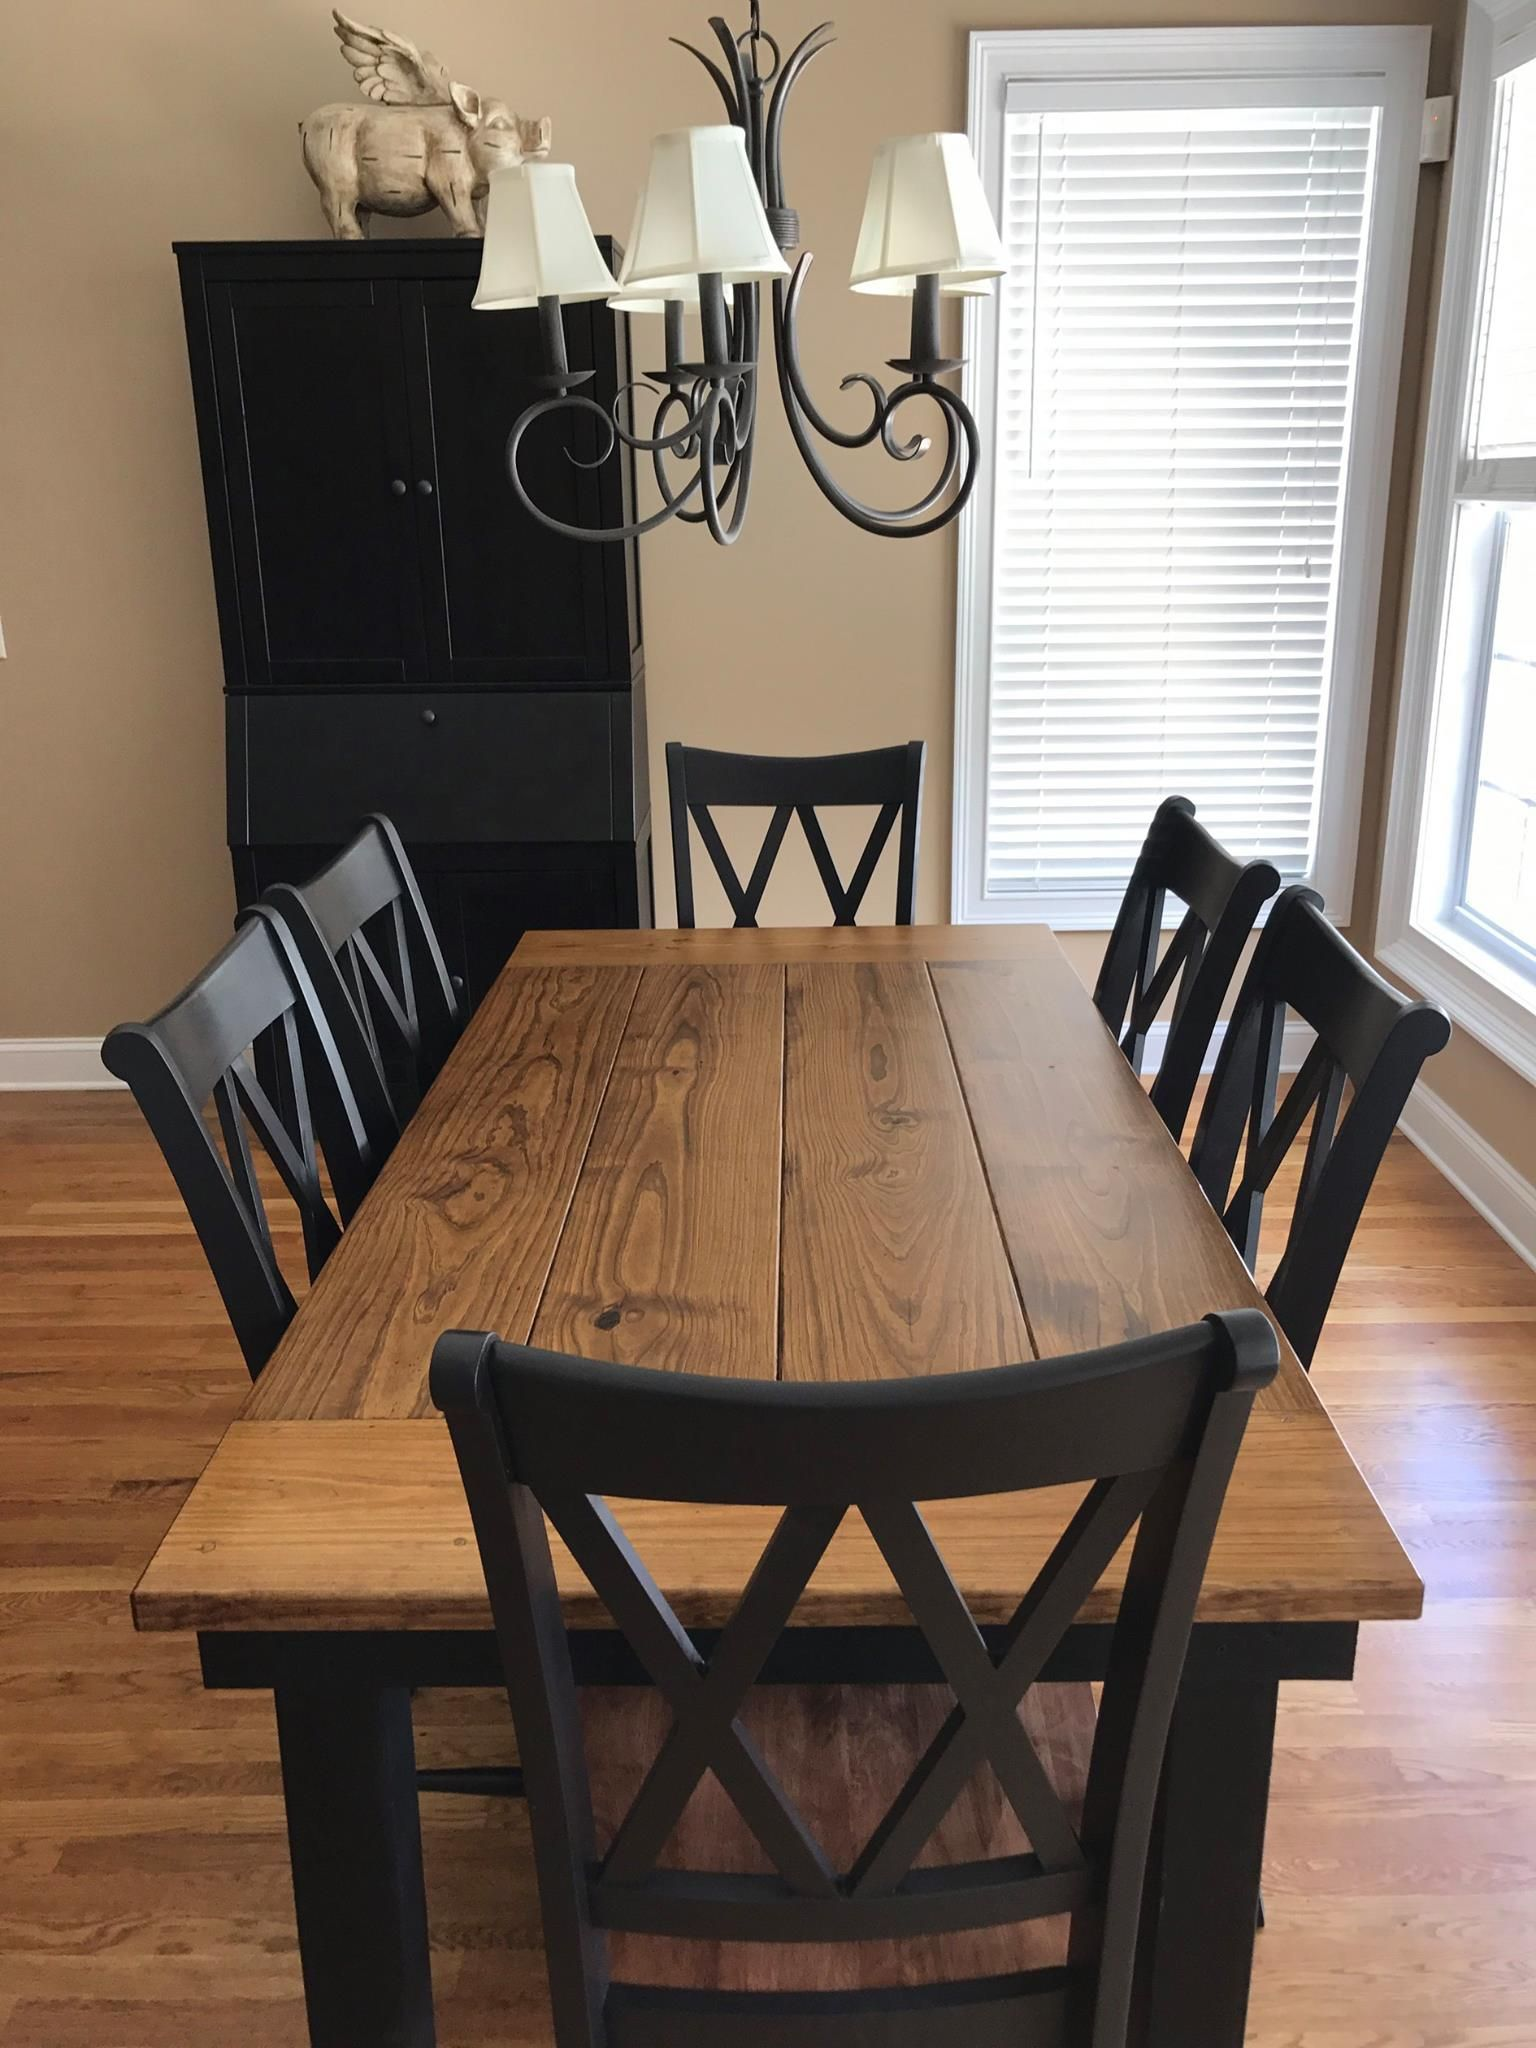 This 6u0027 x 37u201d Farmhouse Table in